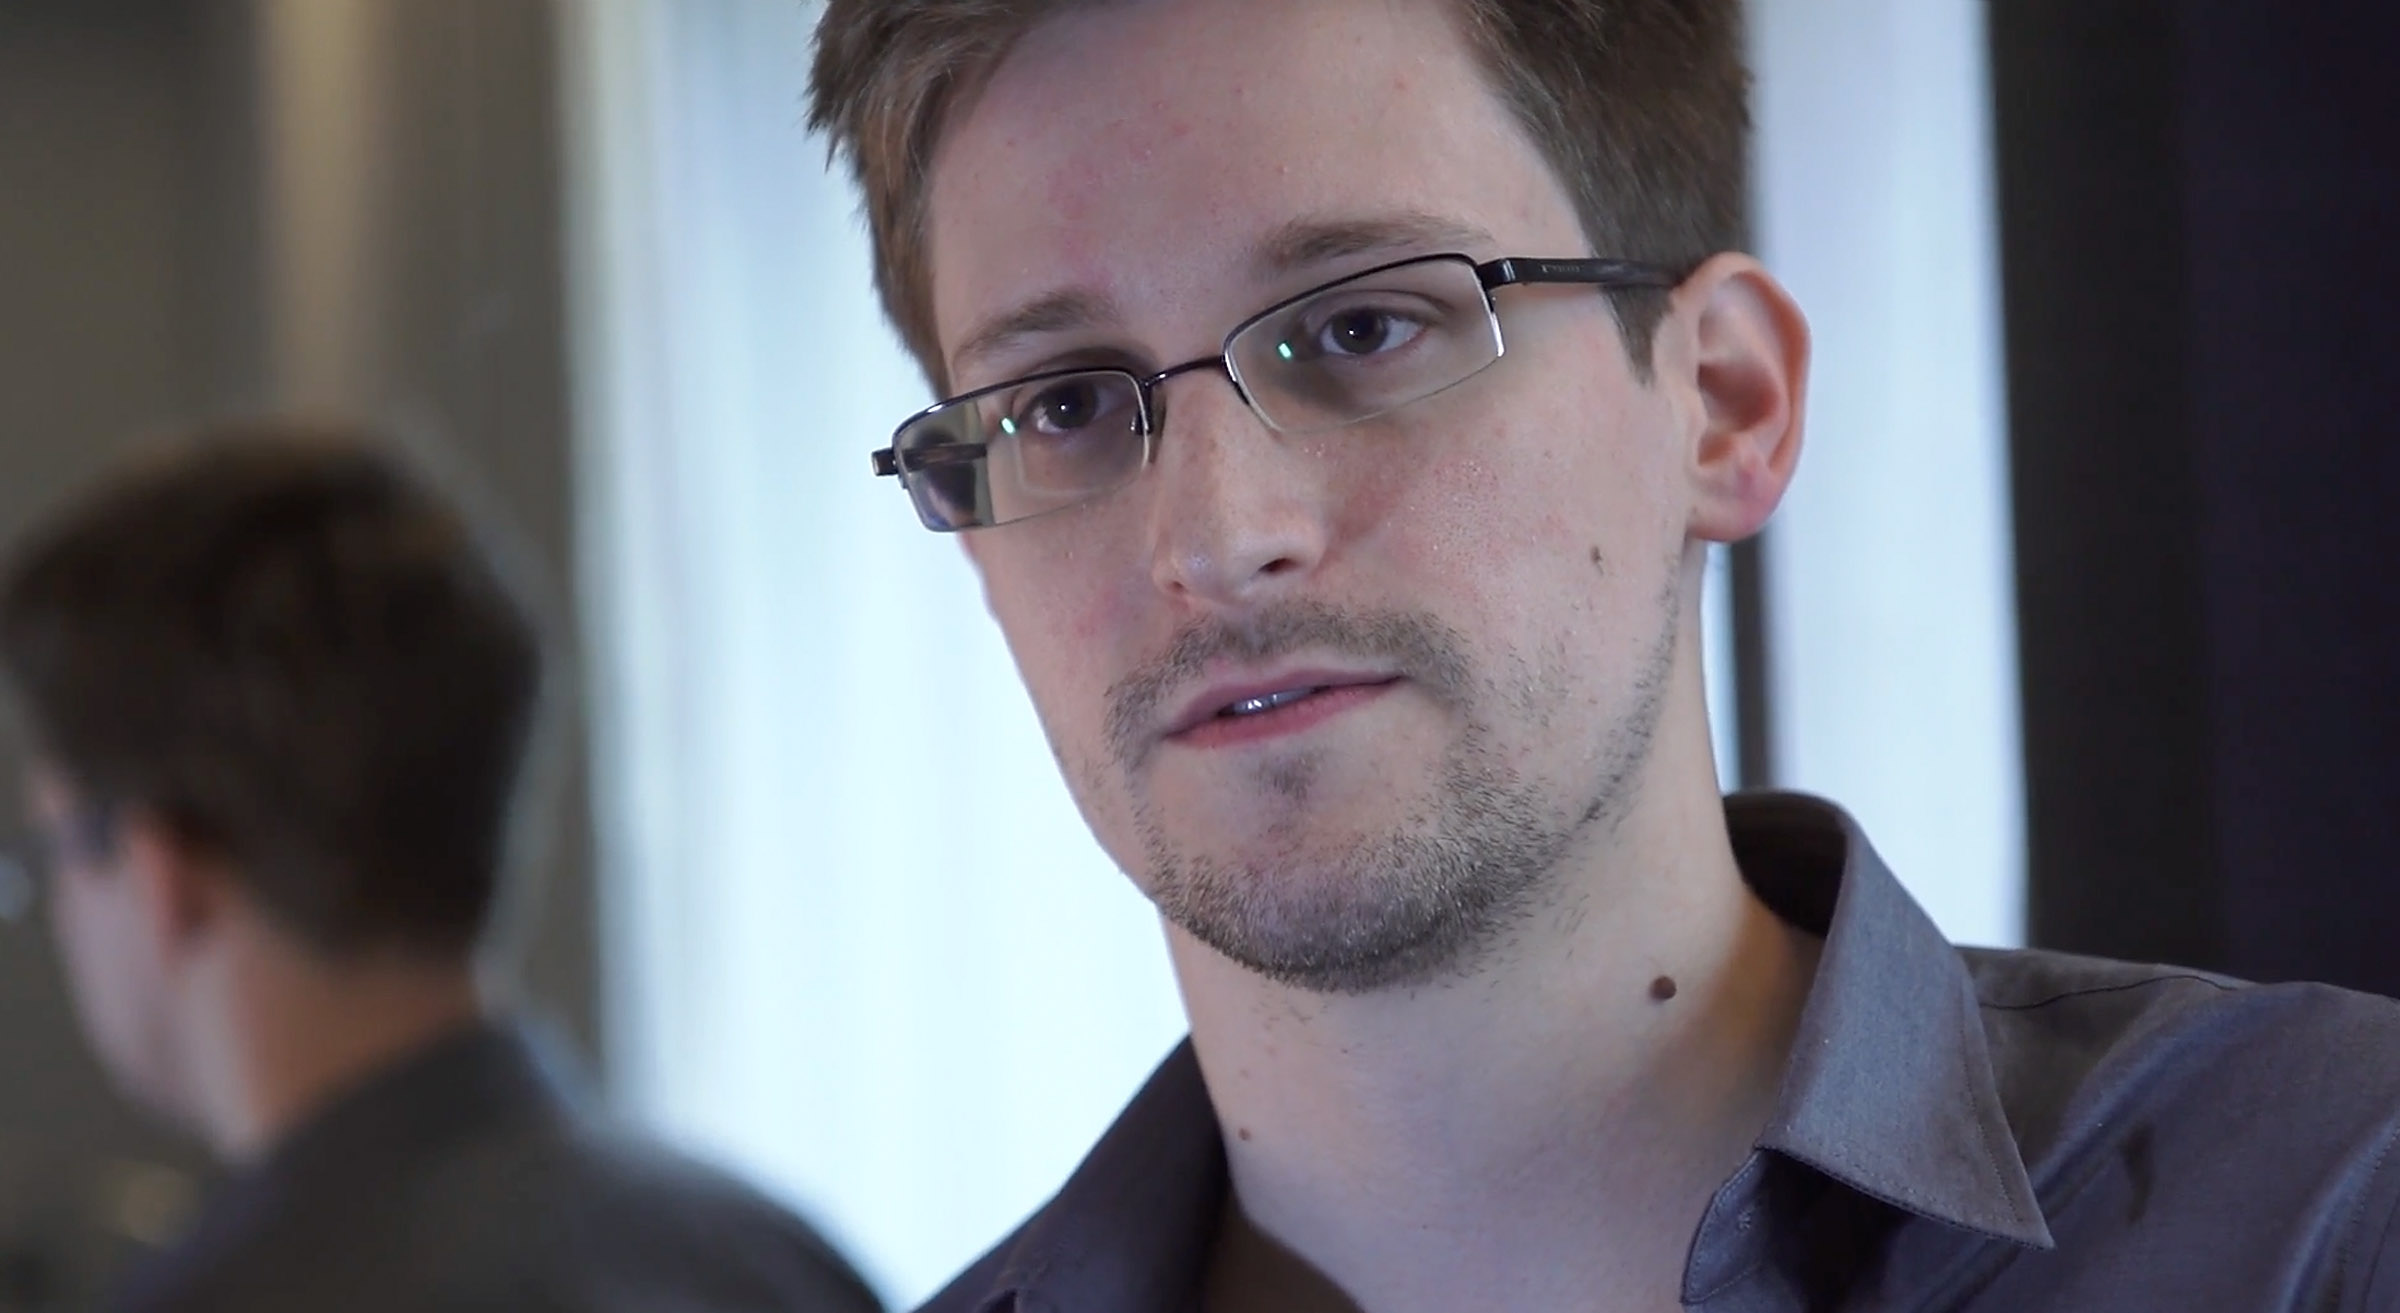 <p>Edward Snowden's leaking of classified government information, which 